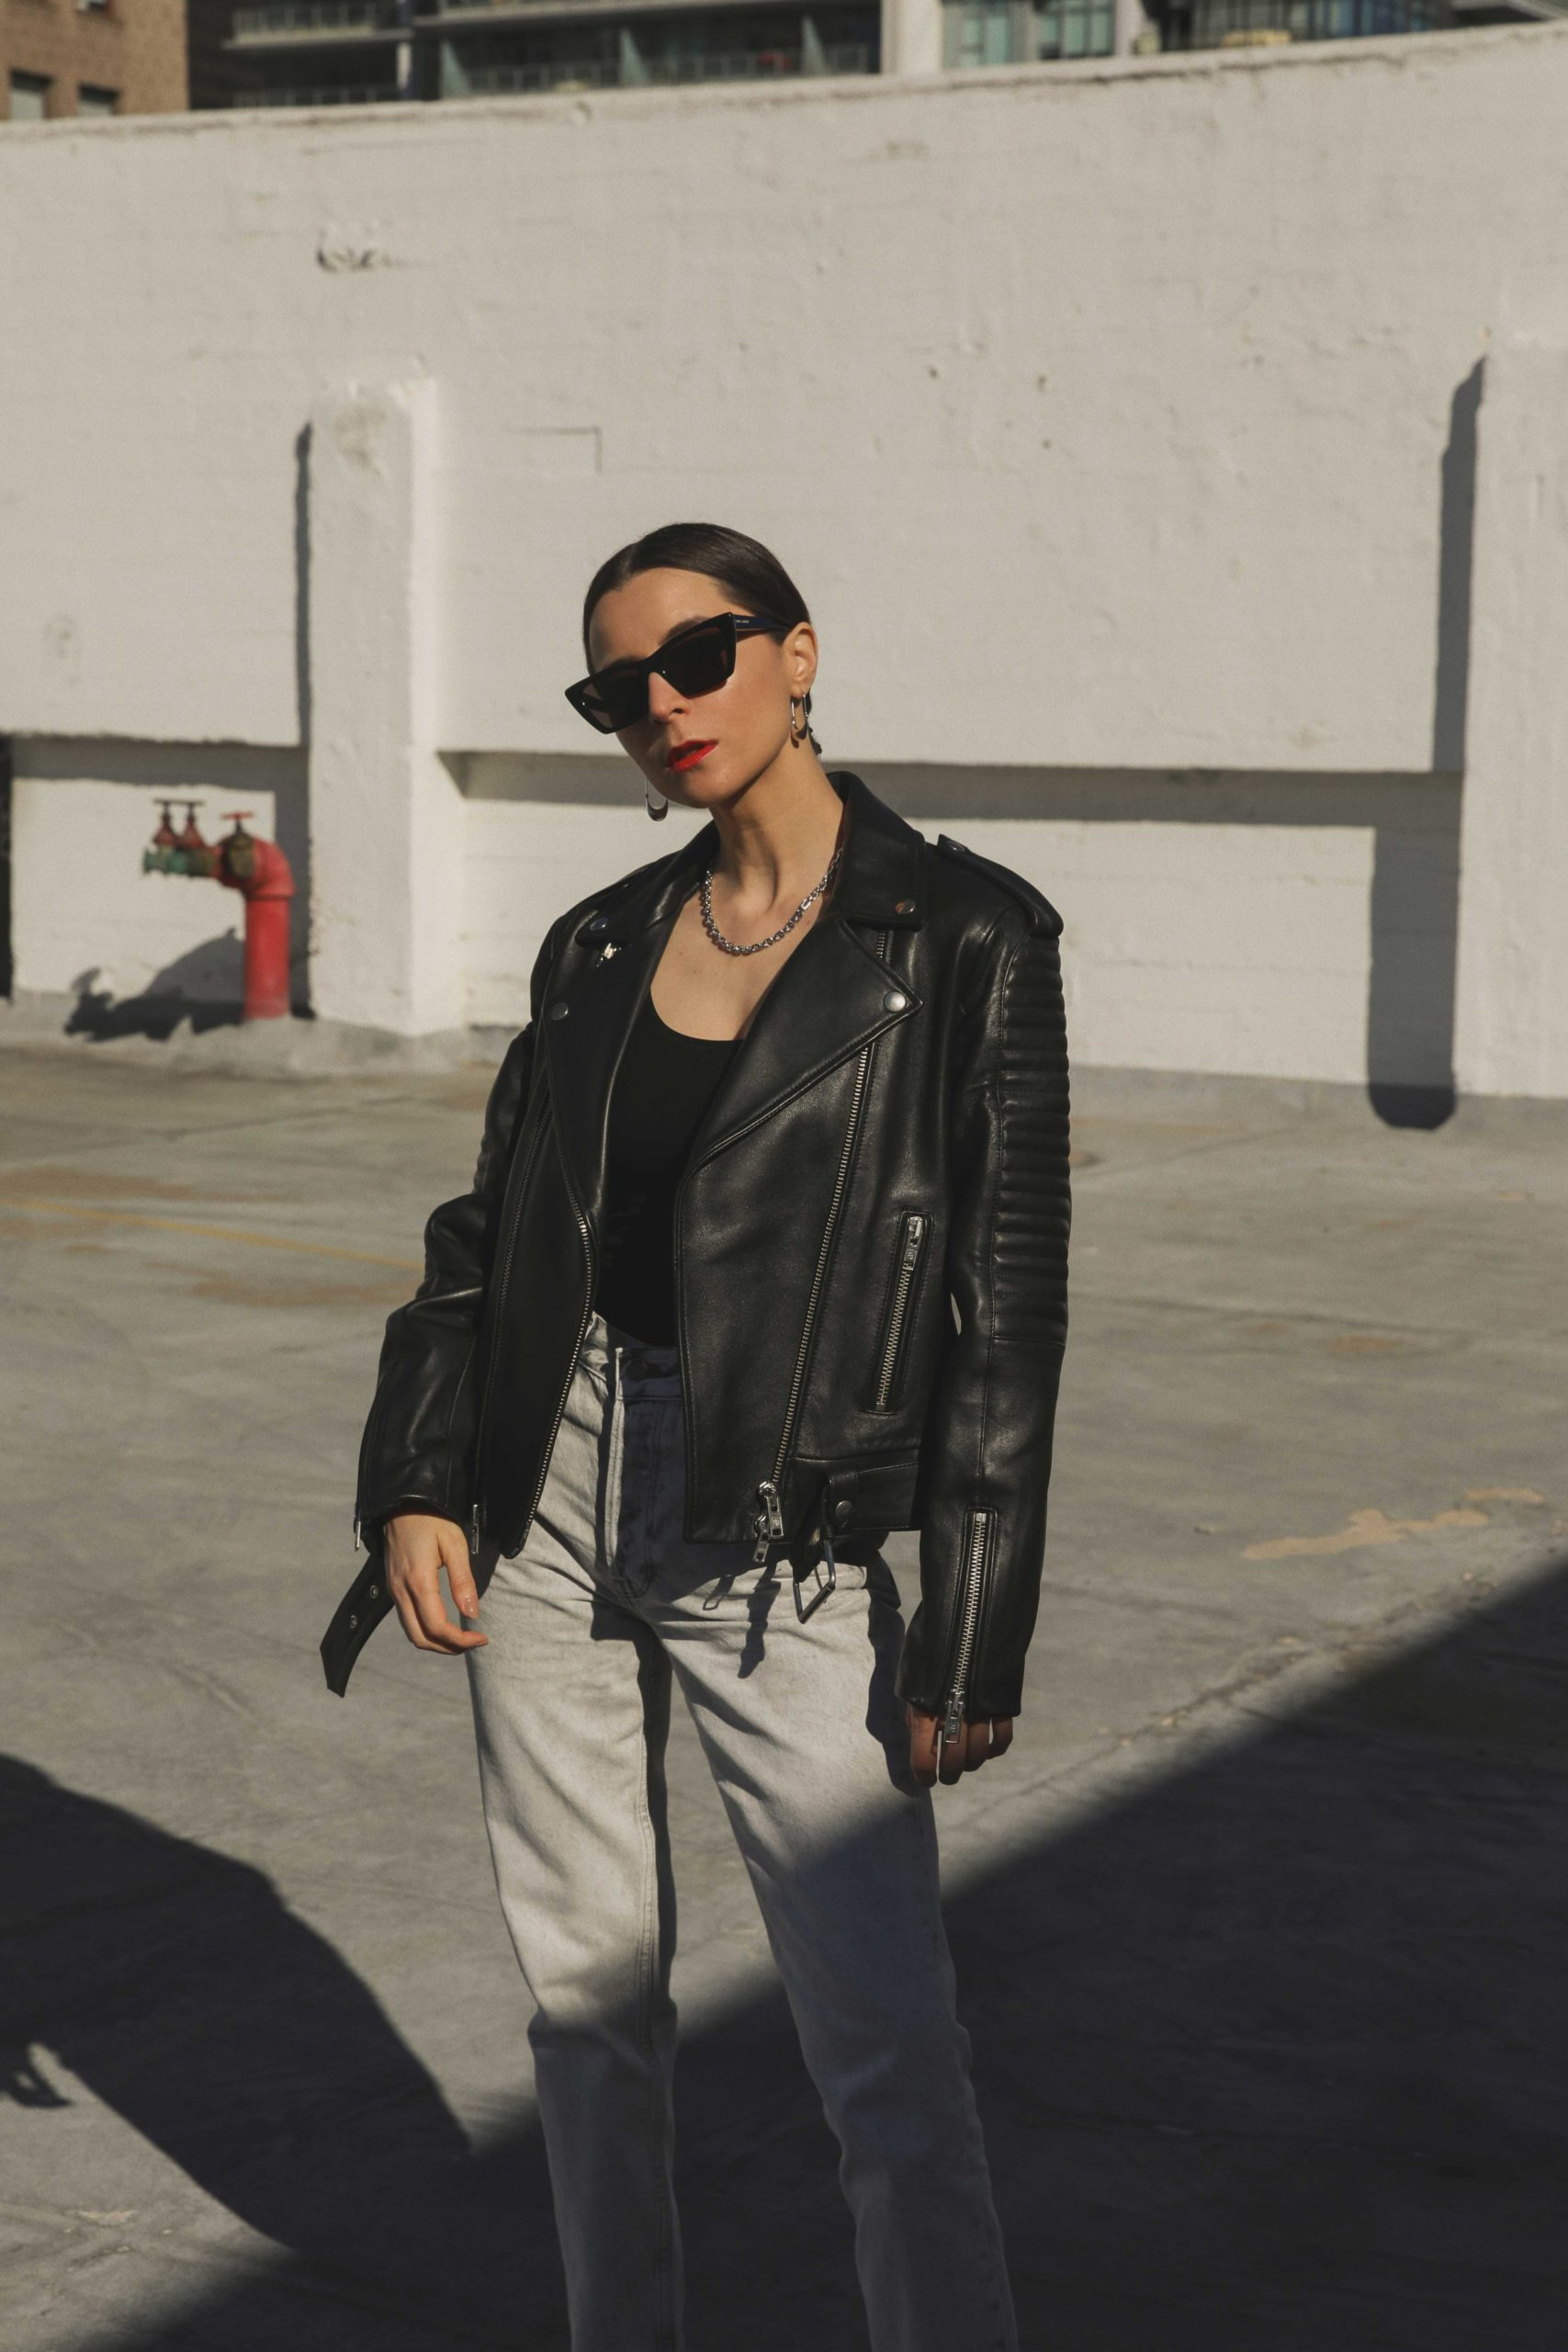 The perfecto: The black leather jacket for women The leather biker jacket is a French staple: timeless and effortless chic! Selection of the best premium leather jackets Anine Bing cassidy denim jeans brenda powder grey julia comil